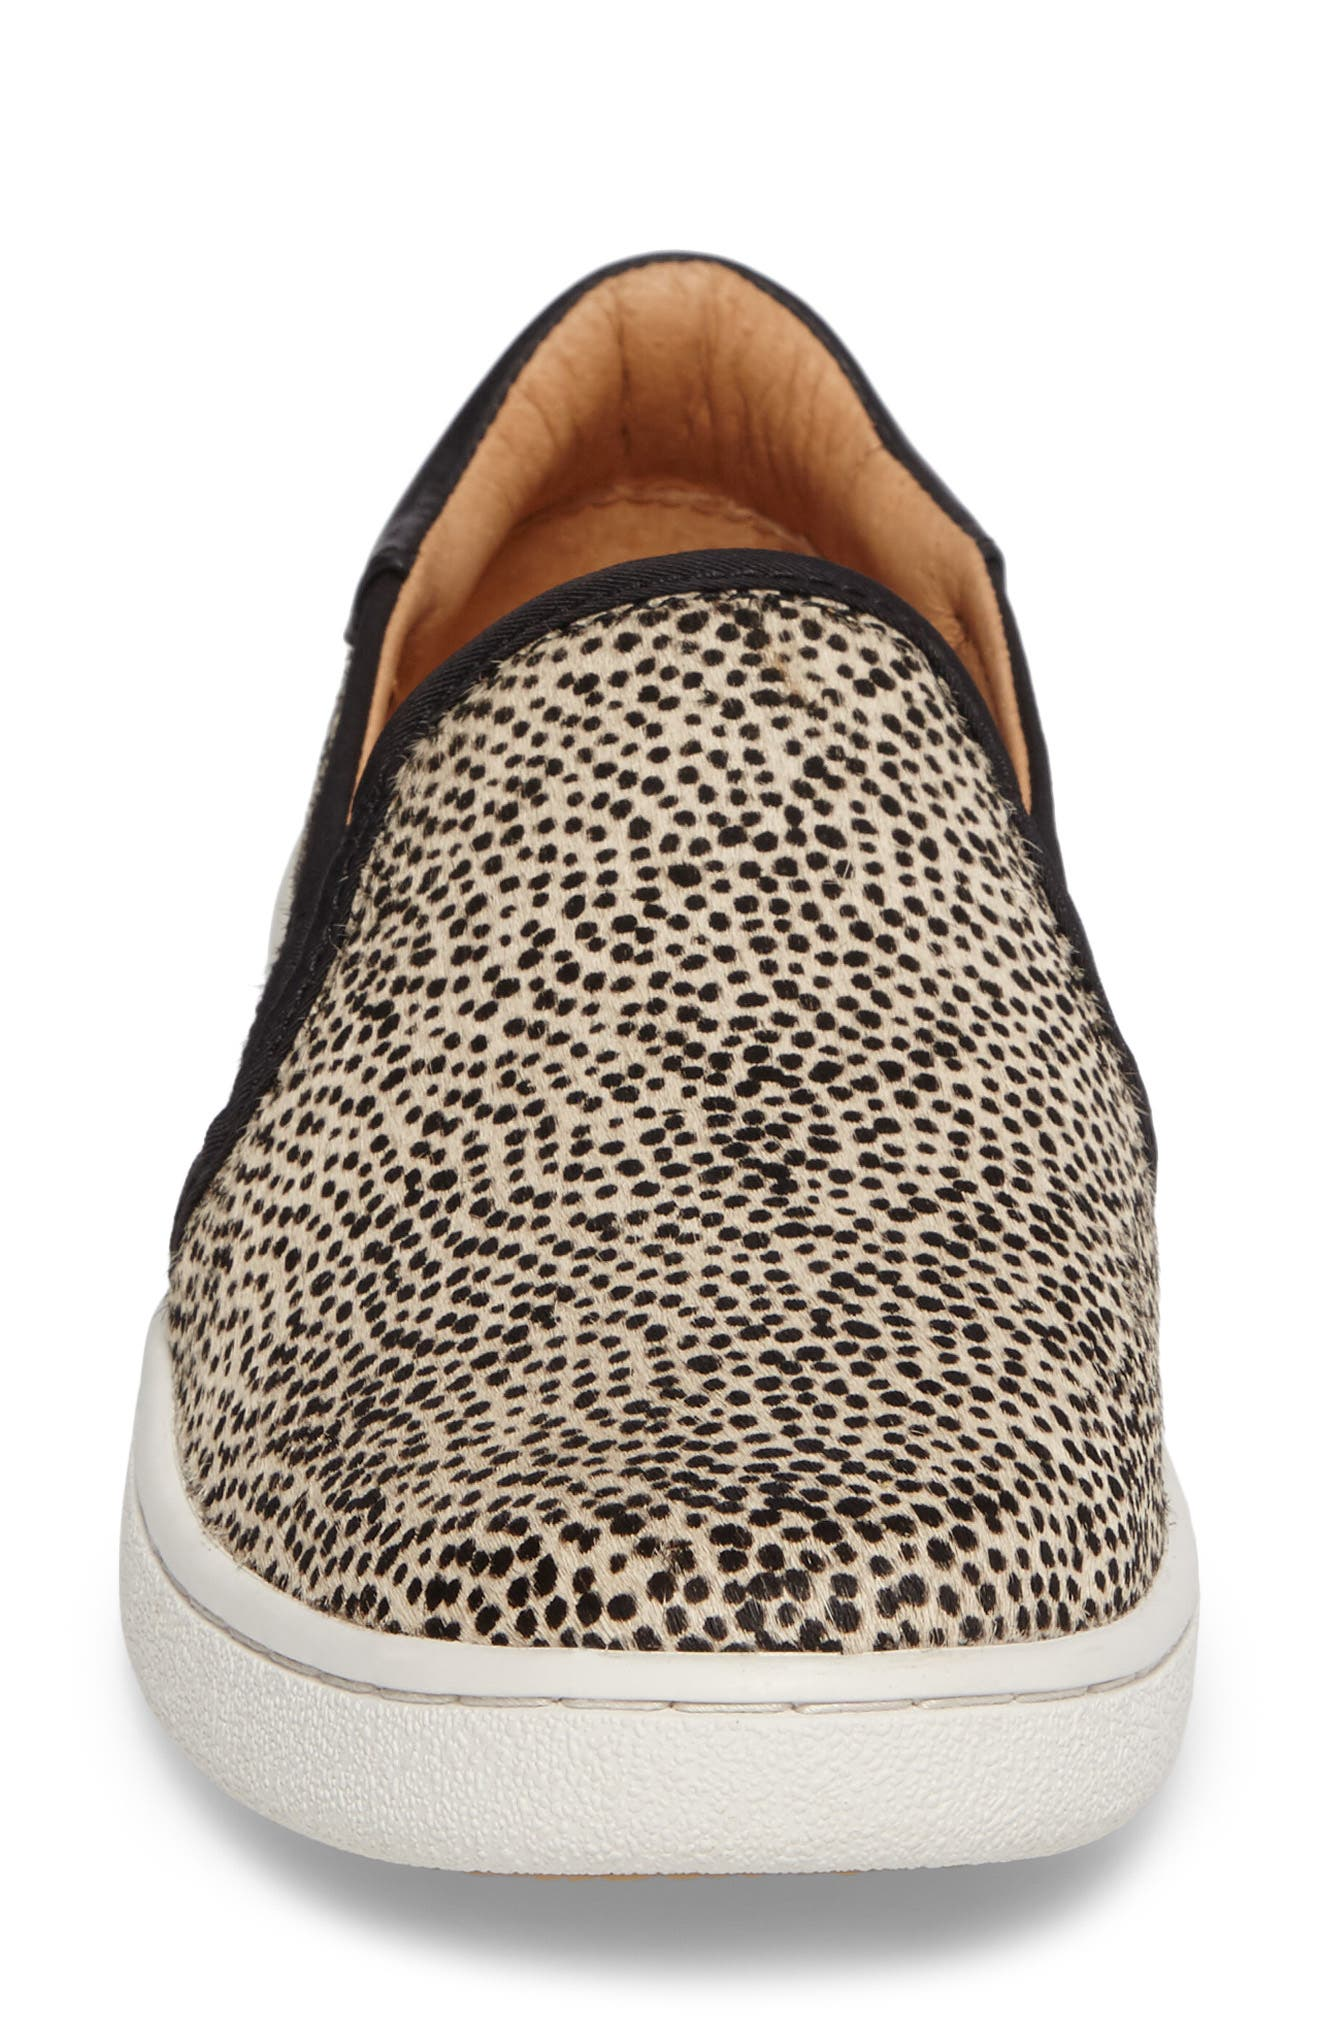 Cas Exotic Genuine Calf Hair Slip-On Sneaker,                             Alternate thumbnail 4, color,                             Black/ Tan Dotted Leather